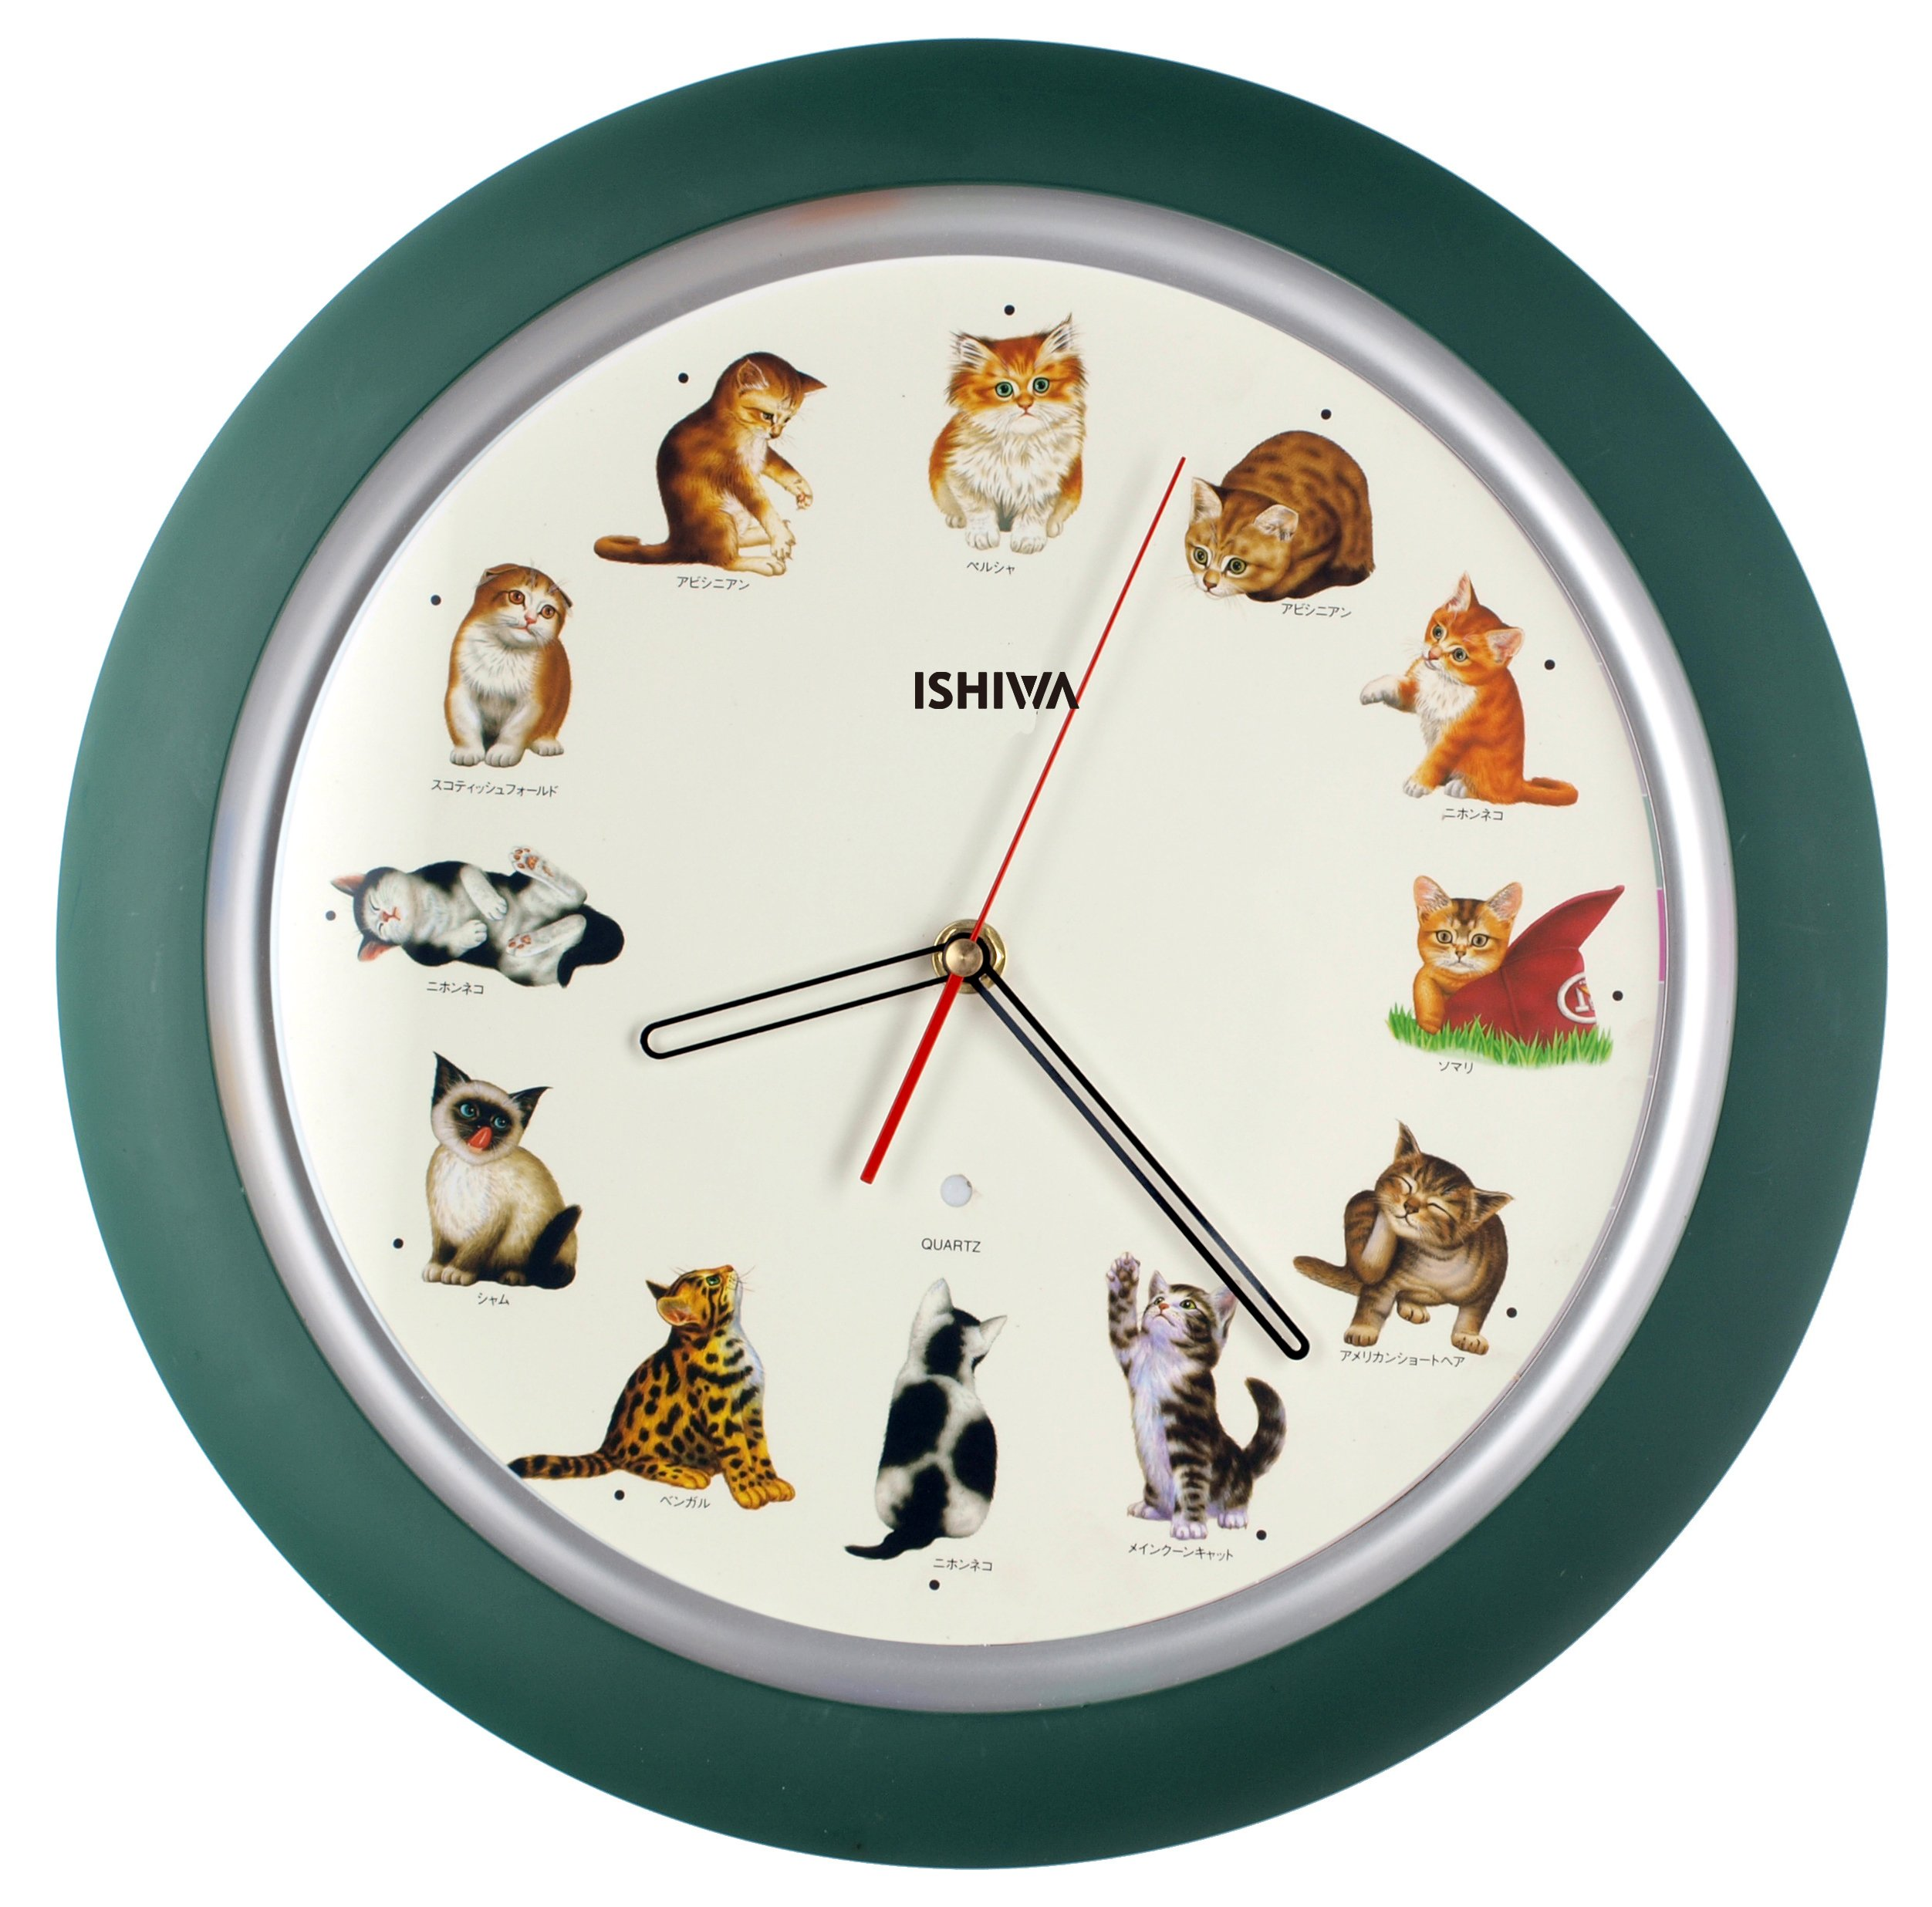 14-inch Unique Animals Family Quality Wall Clock Silent Non-ticking Movement, Home Decor (W84029-1 Cats)